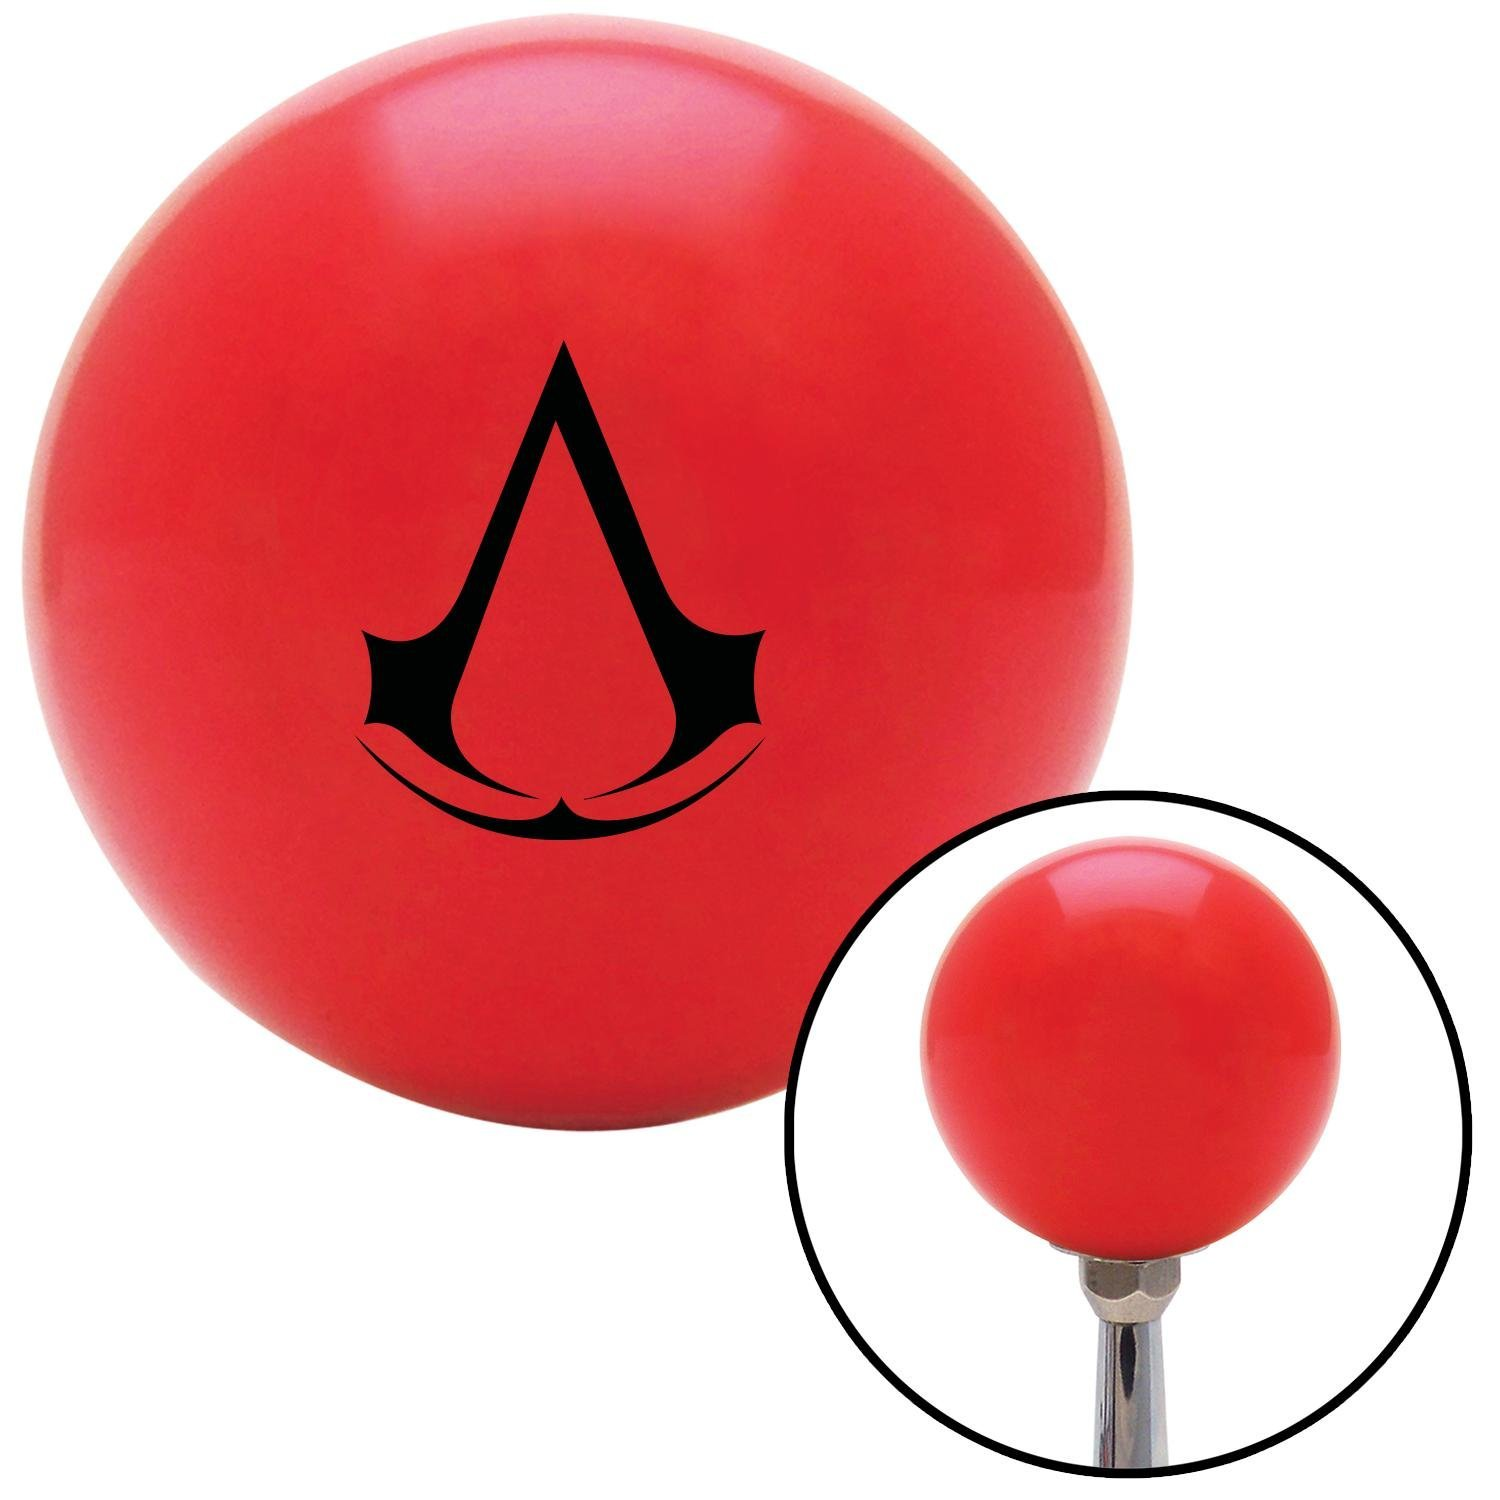 Black Assassins Creed American Shifter 94810 Red Shift Knob with M16 x 1.5 Insert